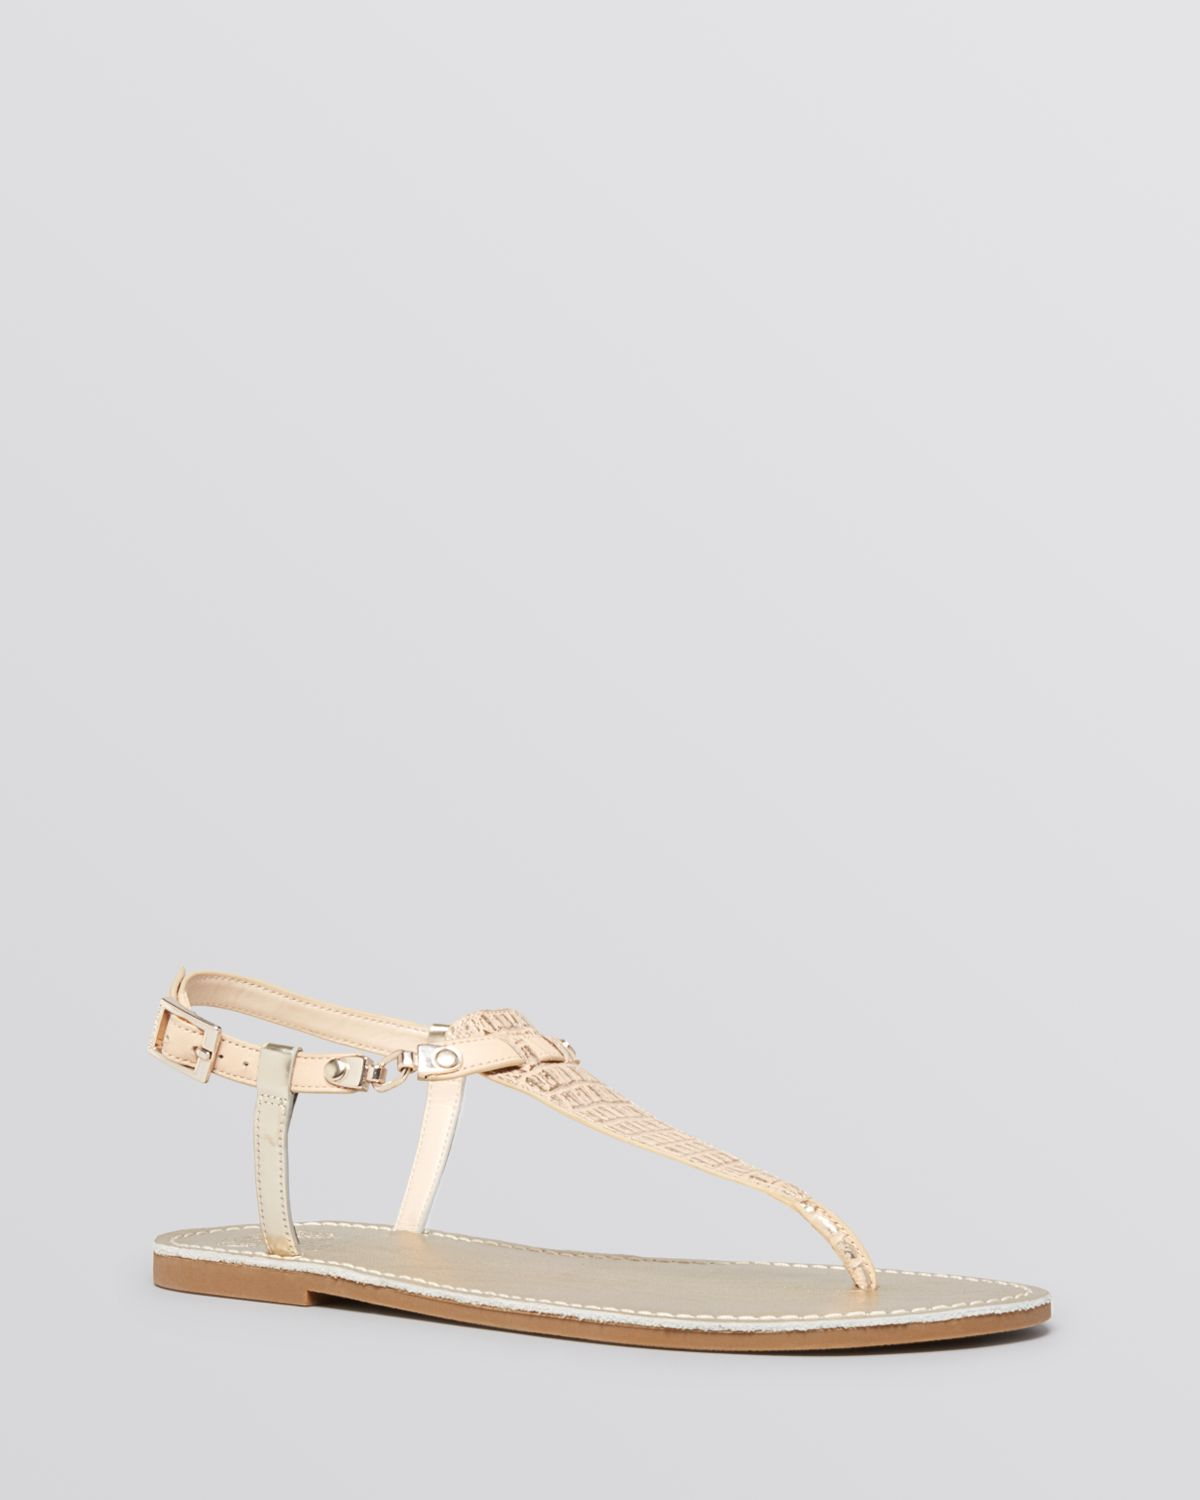 393b02446b68e6 Lyst - Vince Camuto Flat Thong Sandals Itelli Chain in Natural